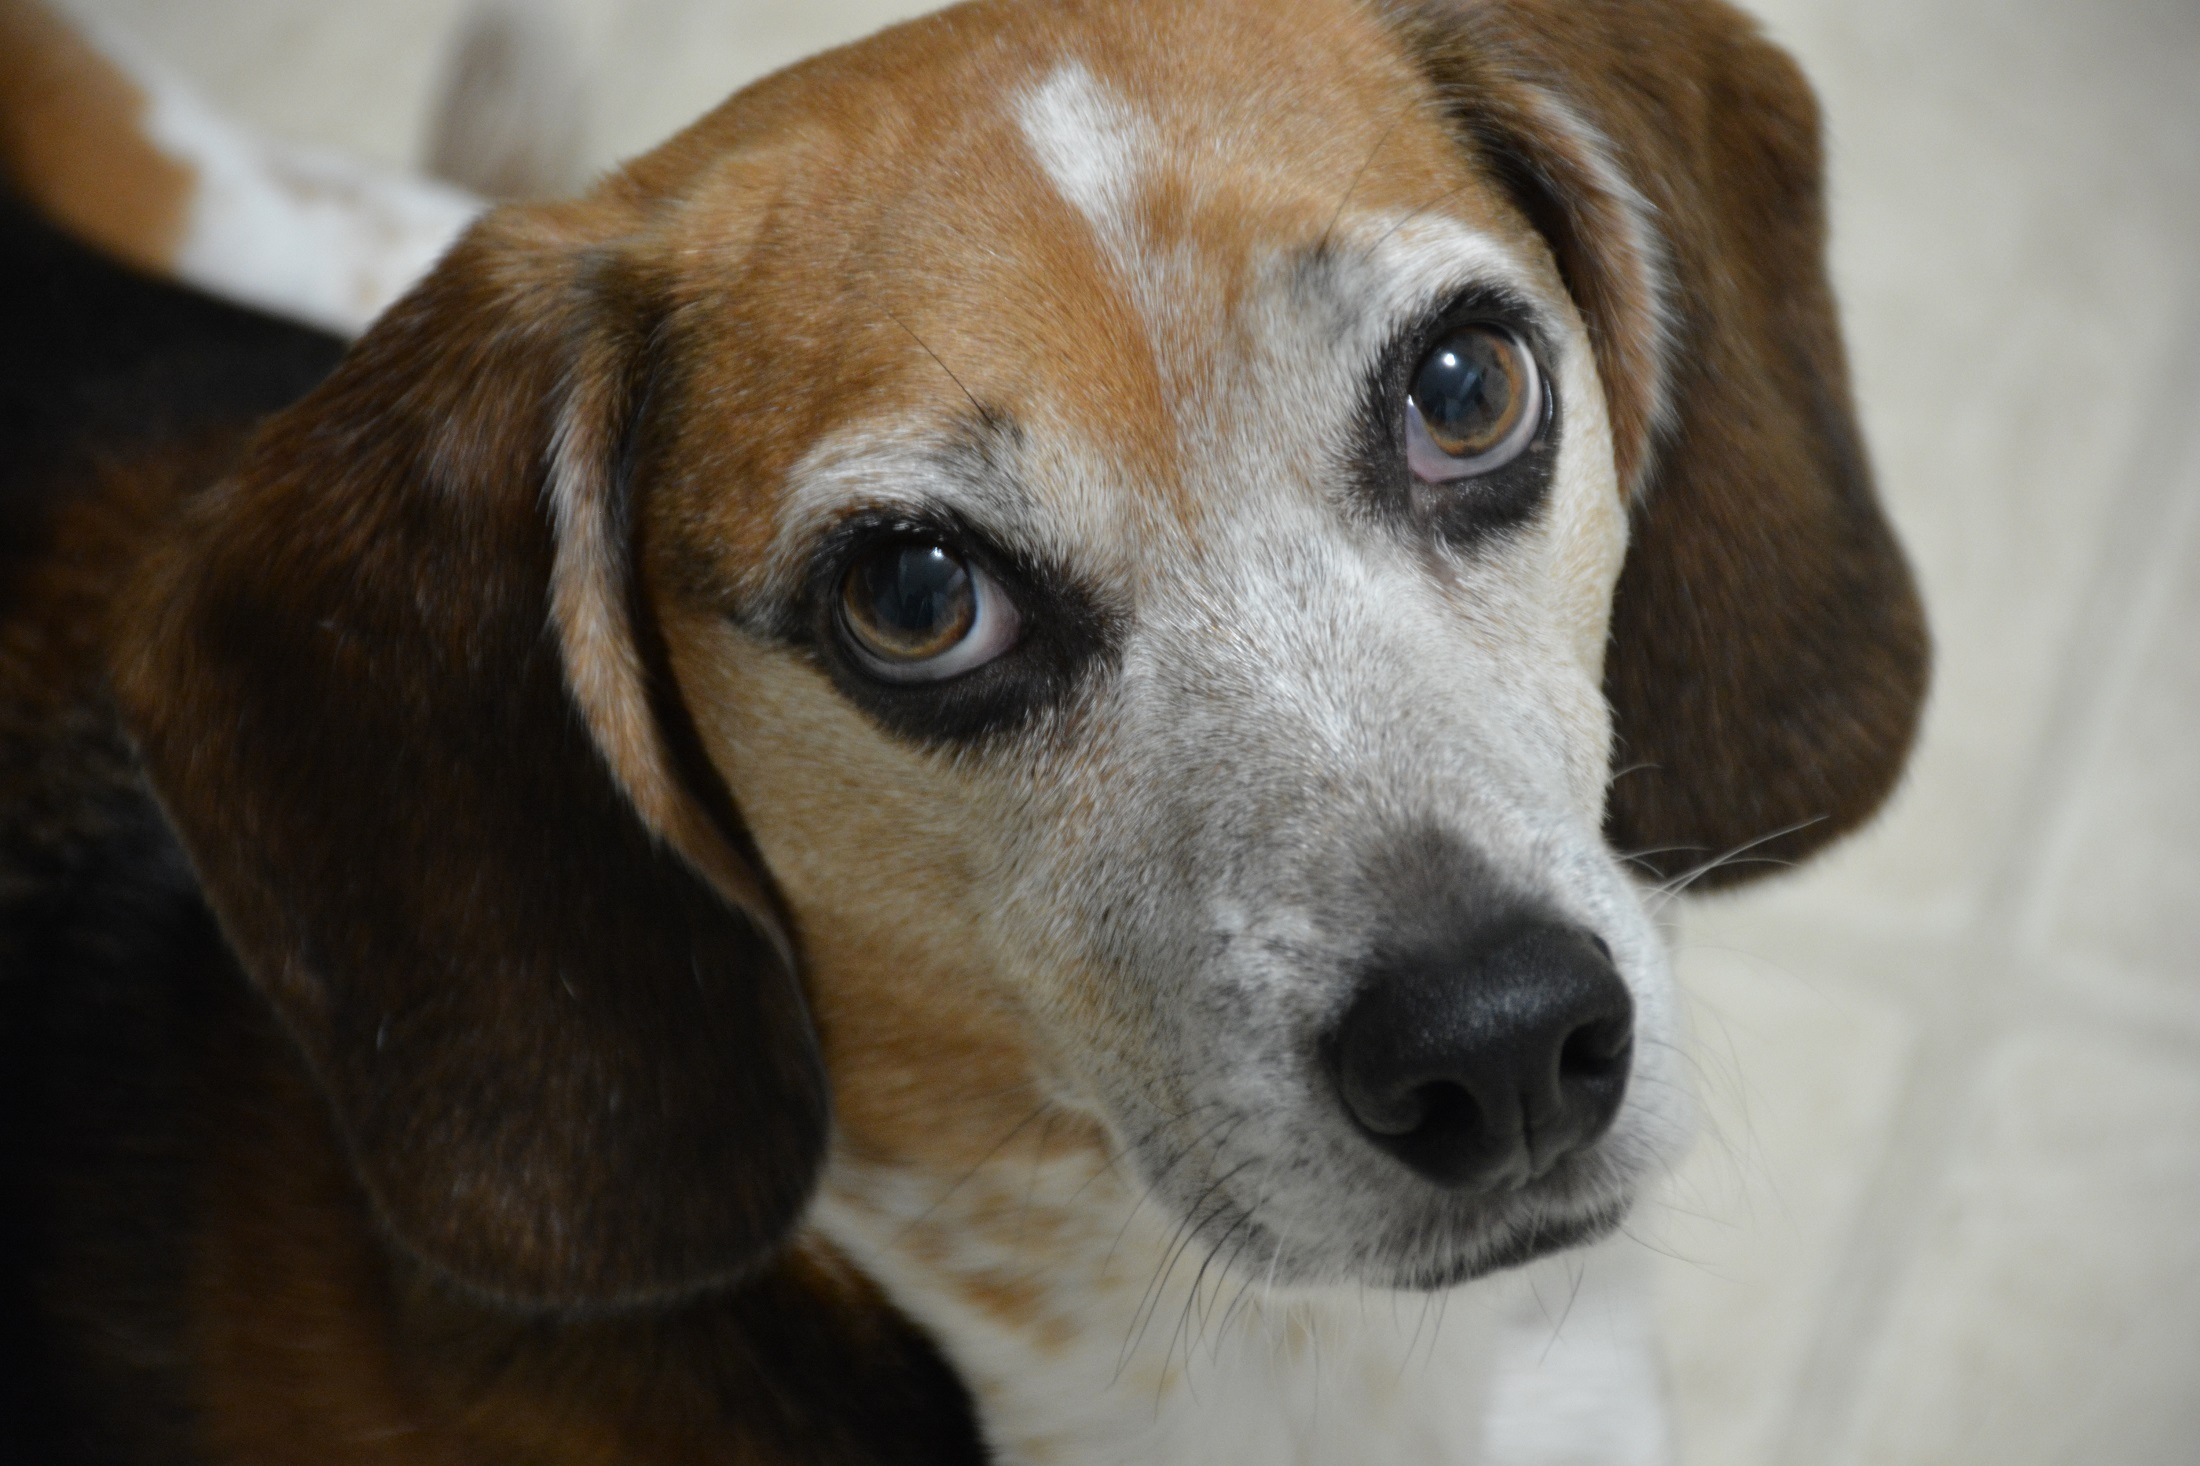 Beagle Dog, Animal, Beagle, Dog, Friend, HQ Photo